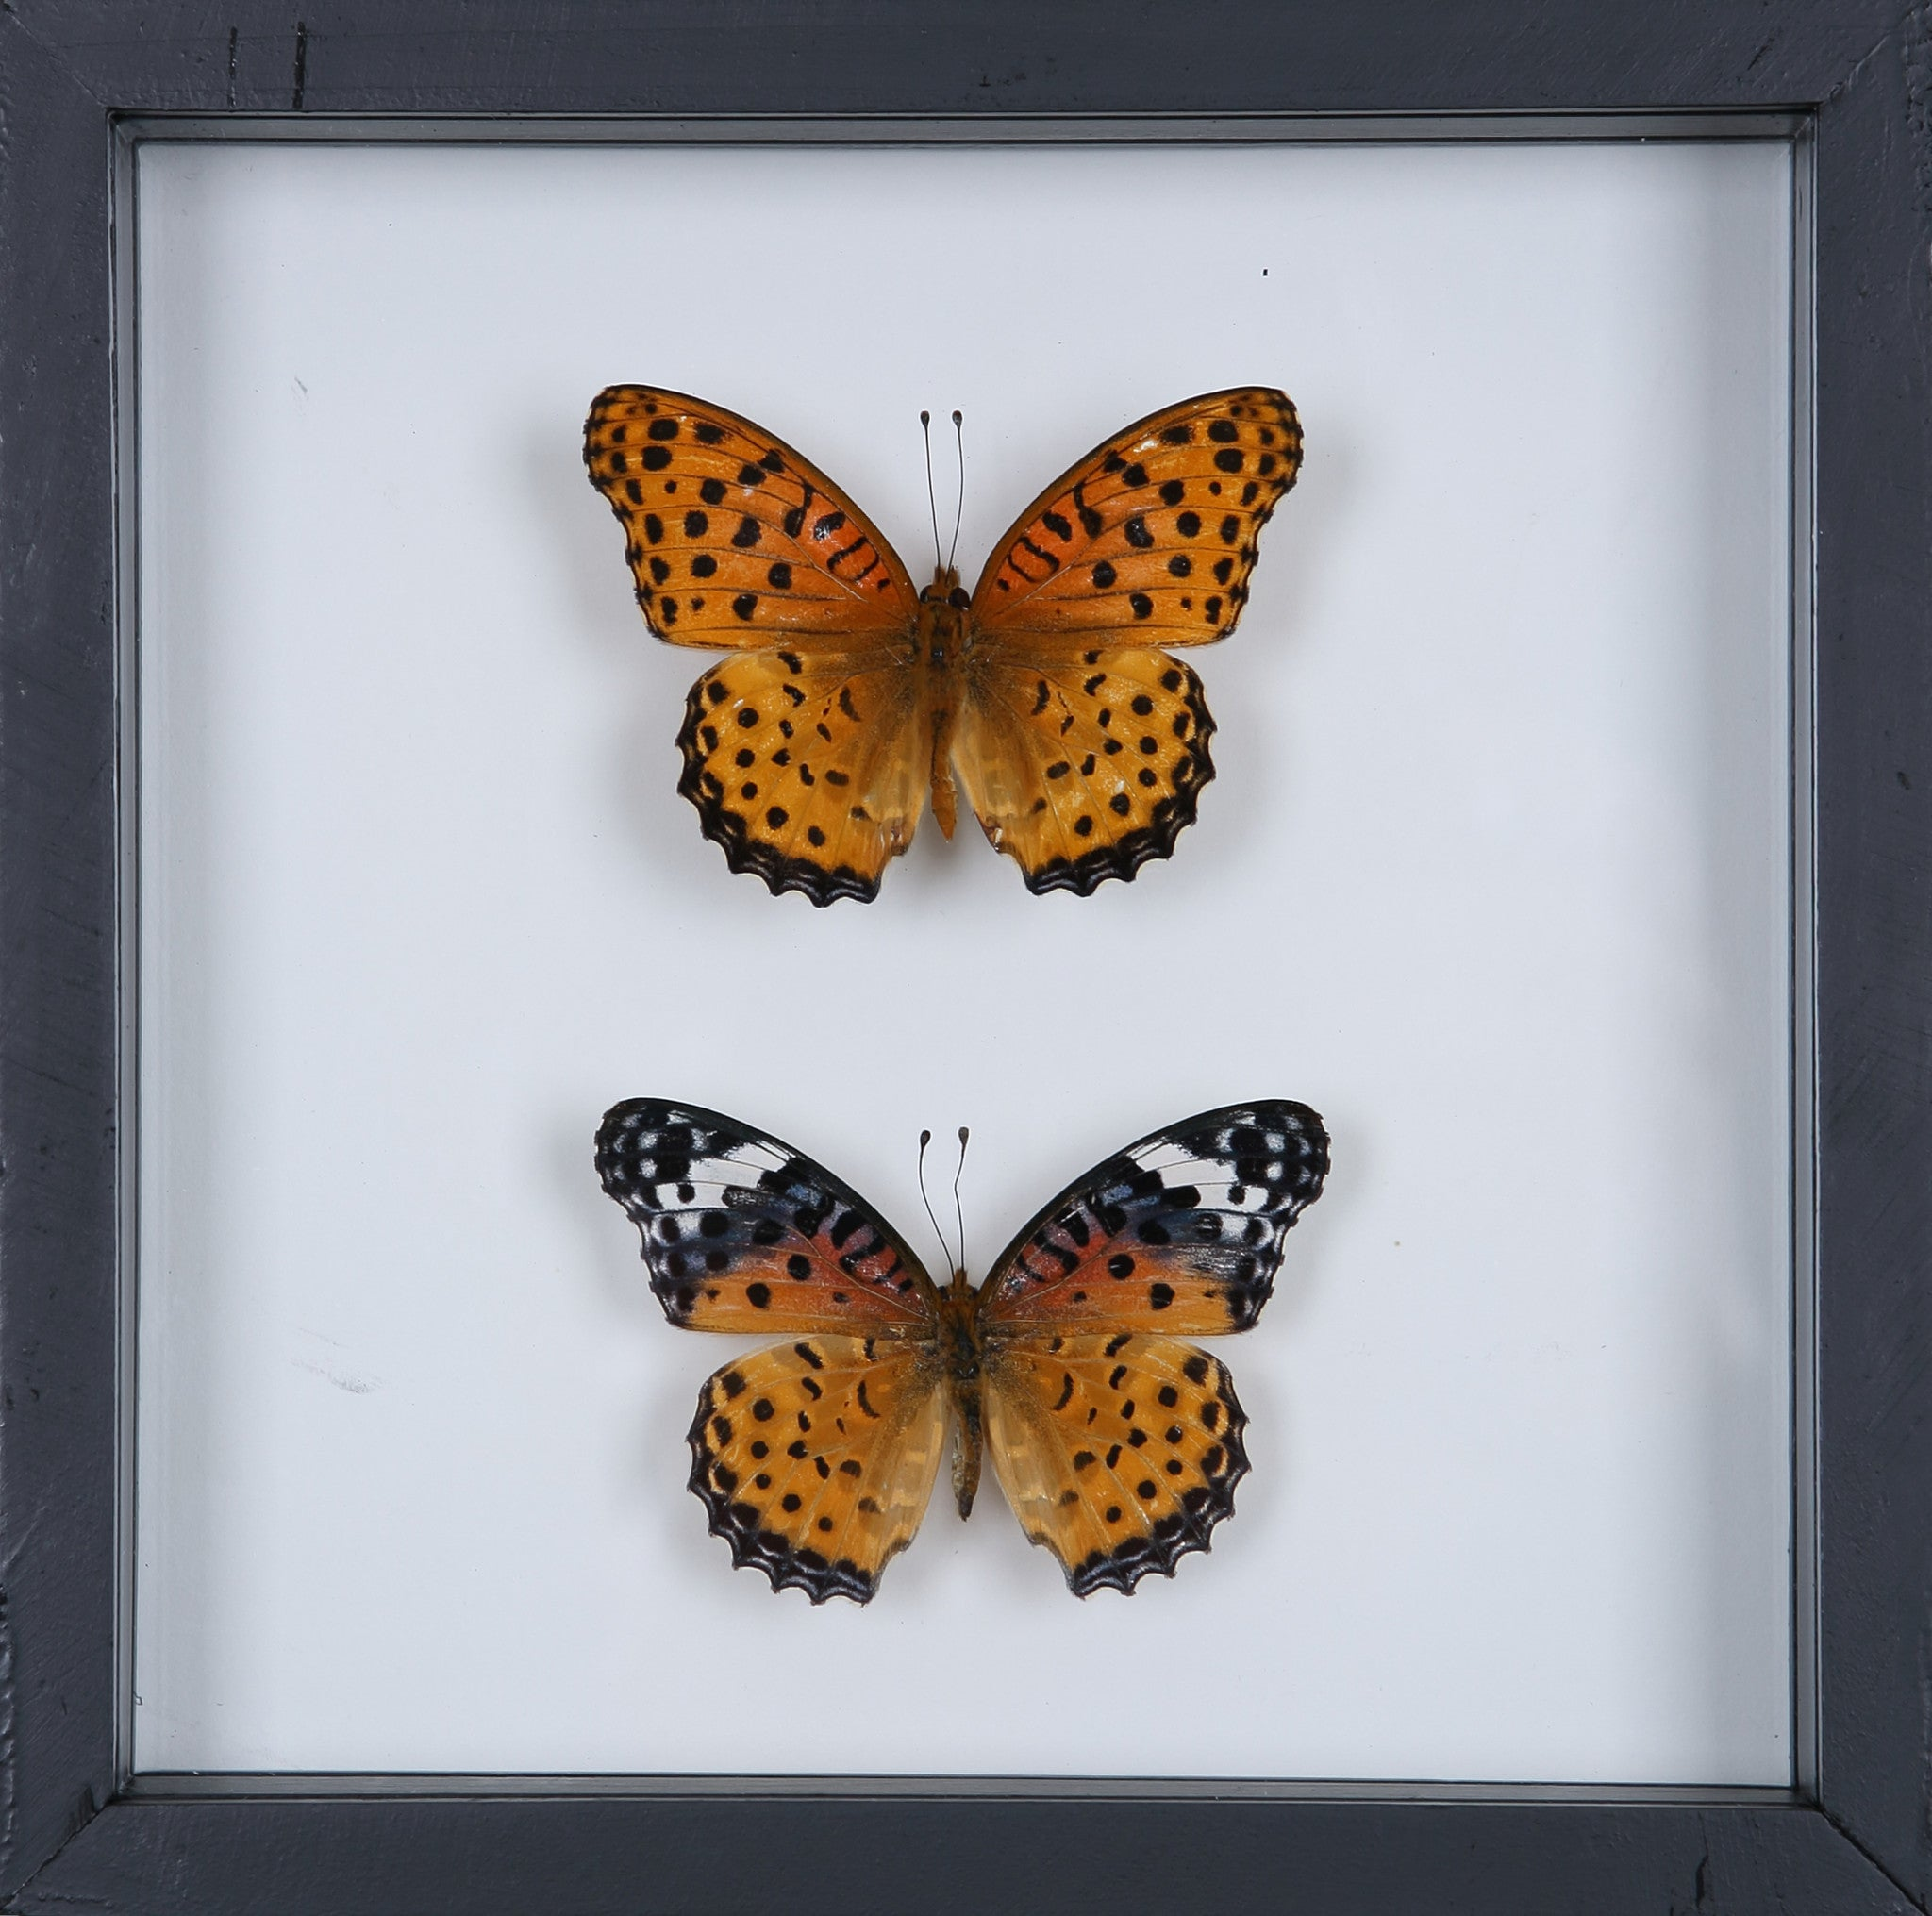 Stunning Mounted Butterflies | Framed Butterflies 12-071 – Natural ...